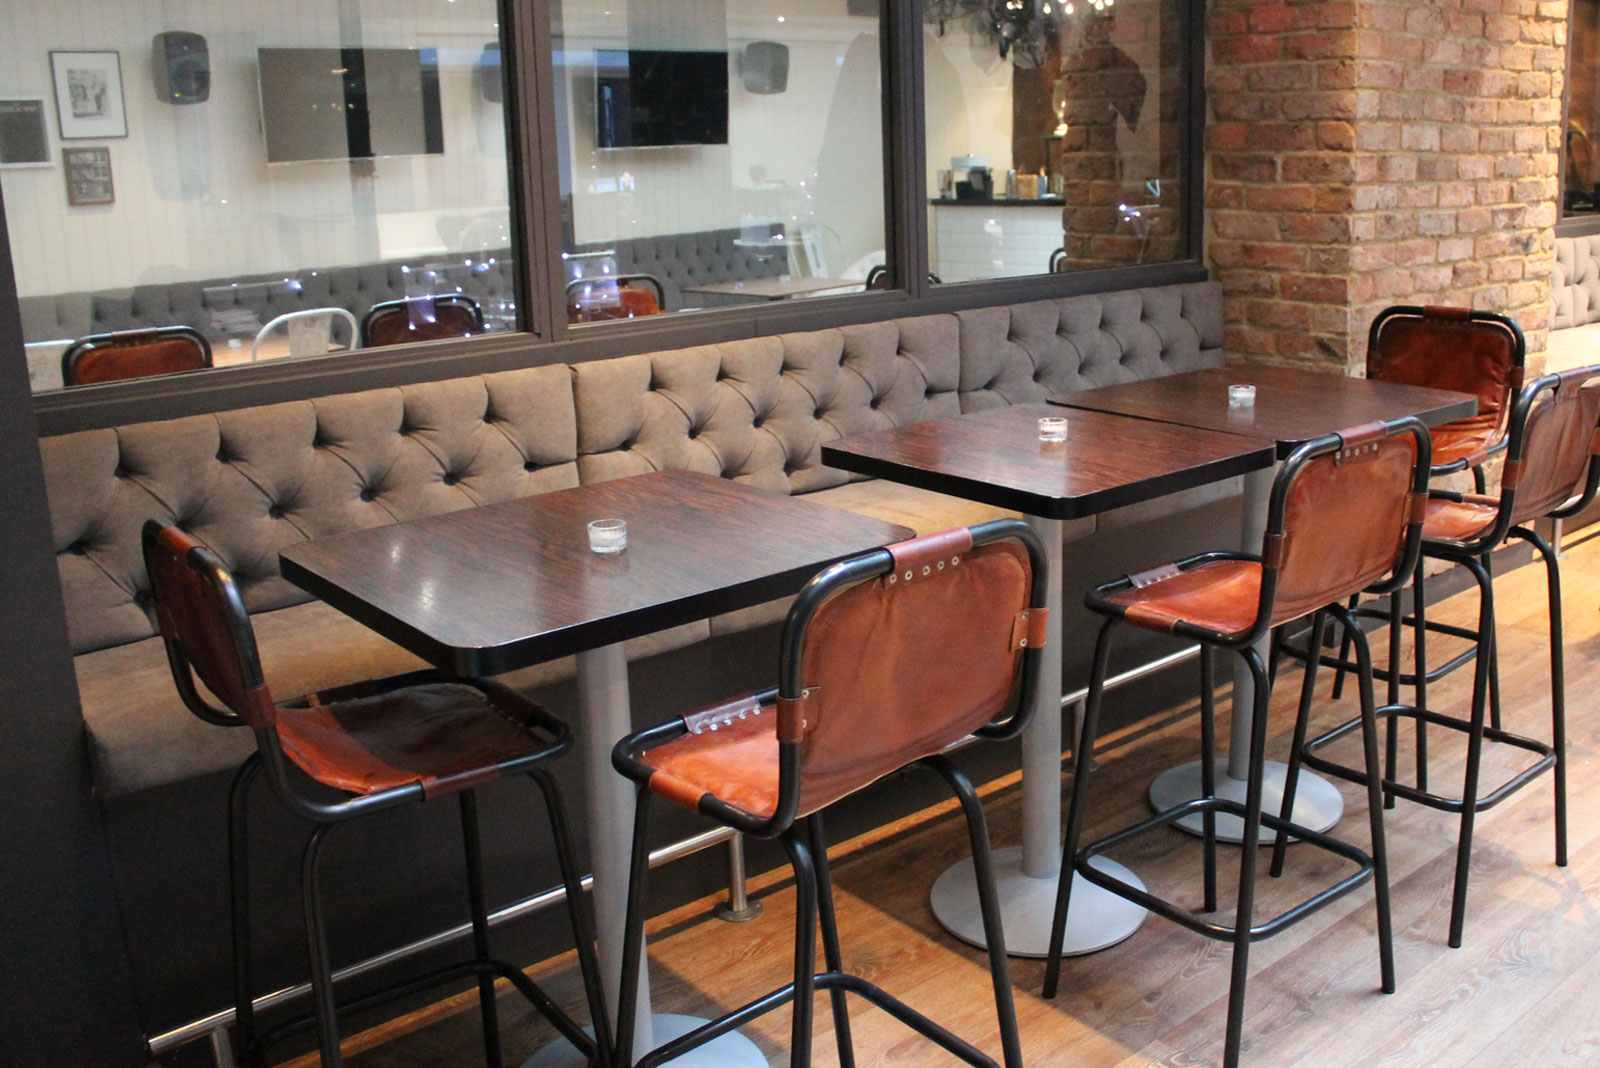 banquette seating for envy bar london fitz impressions. Black Bedroom Furniture Sets. Home Design Ideas